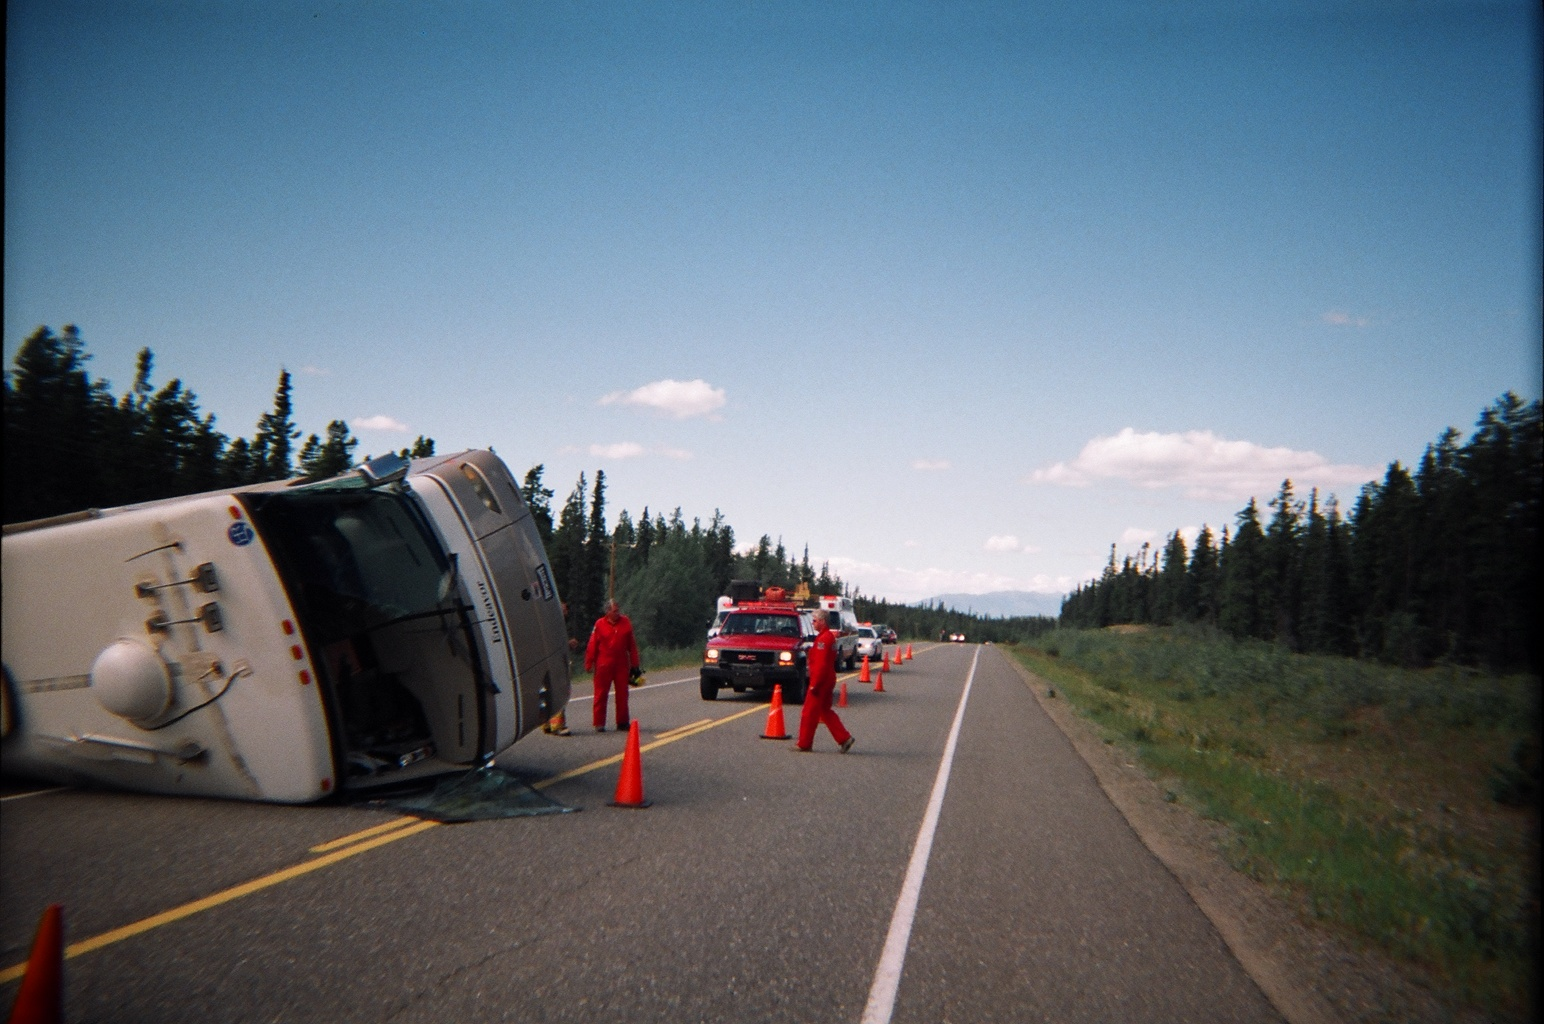 motorhome rollover accident